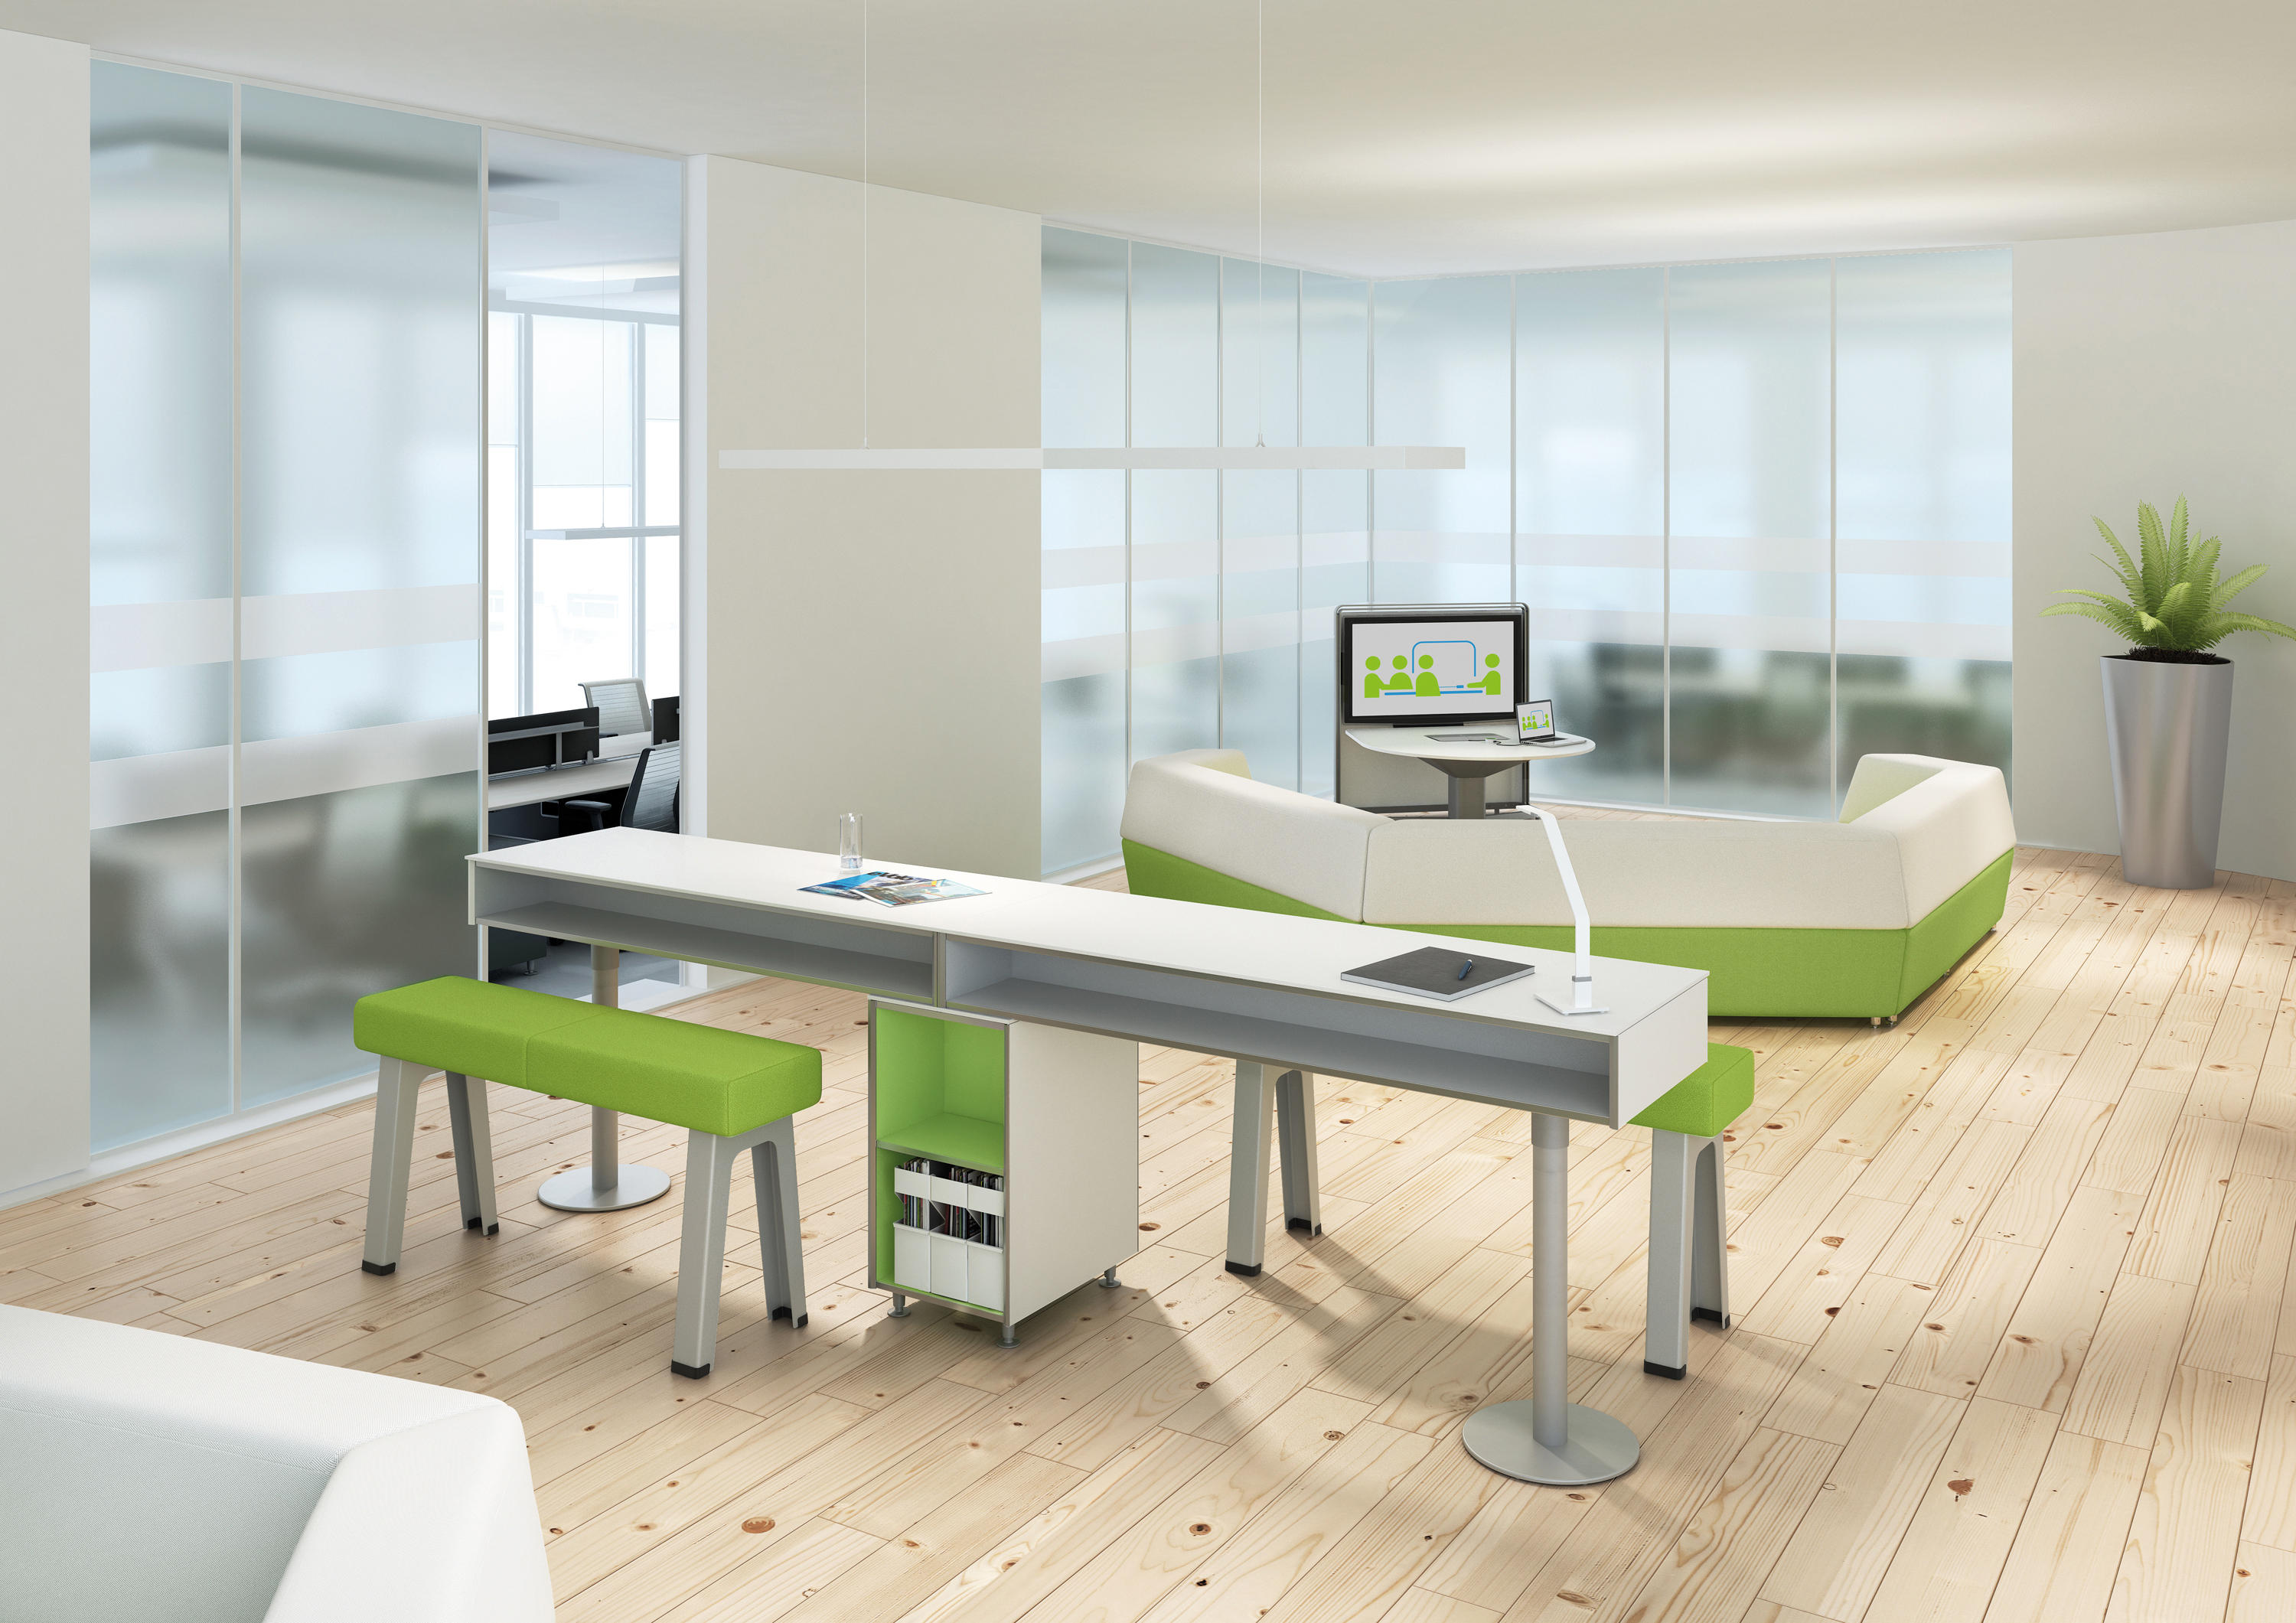 b free lounge bar tables from steelcase architonic. Black Bedroom Furniture Sets. Home Design Ideas